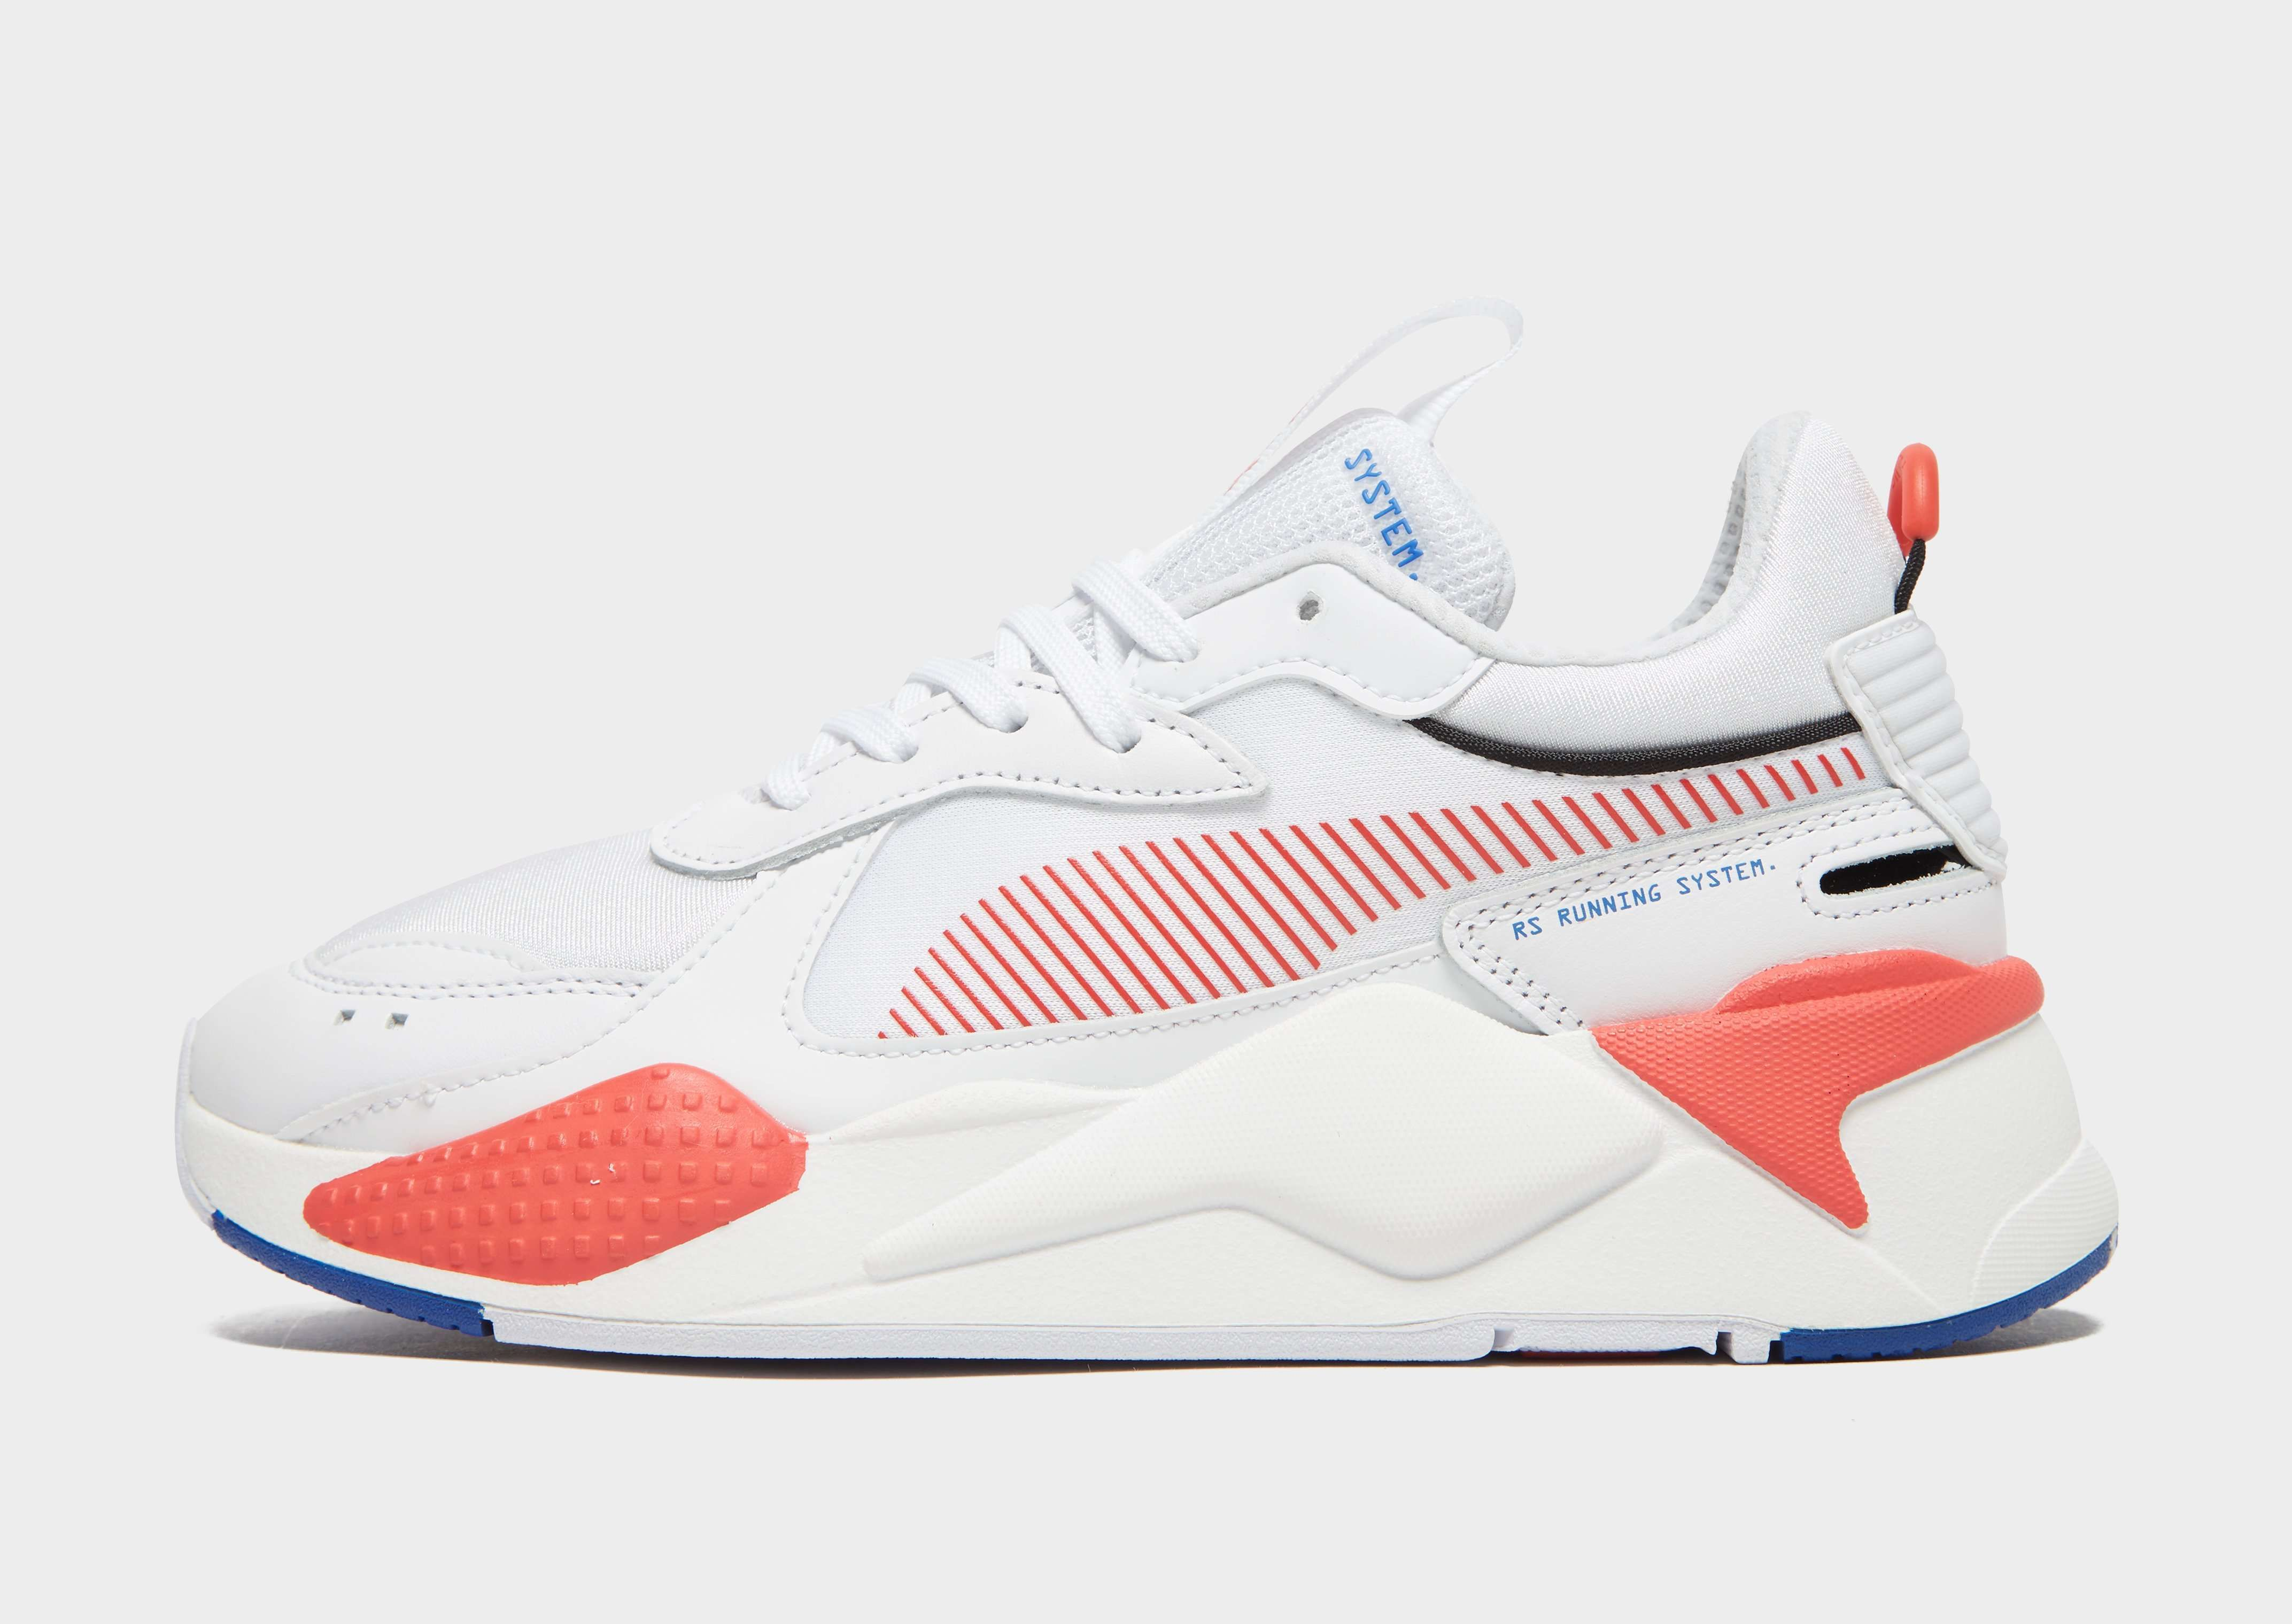 PUMA RS X Script Women's | Best sneakers, Sneakers, Jd sports